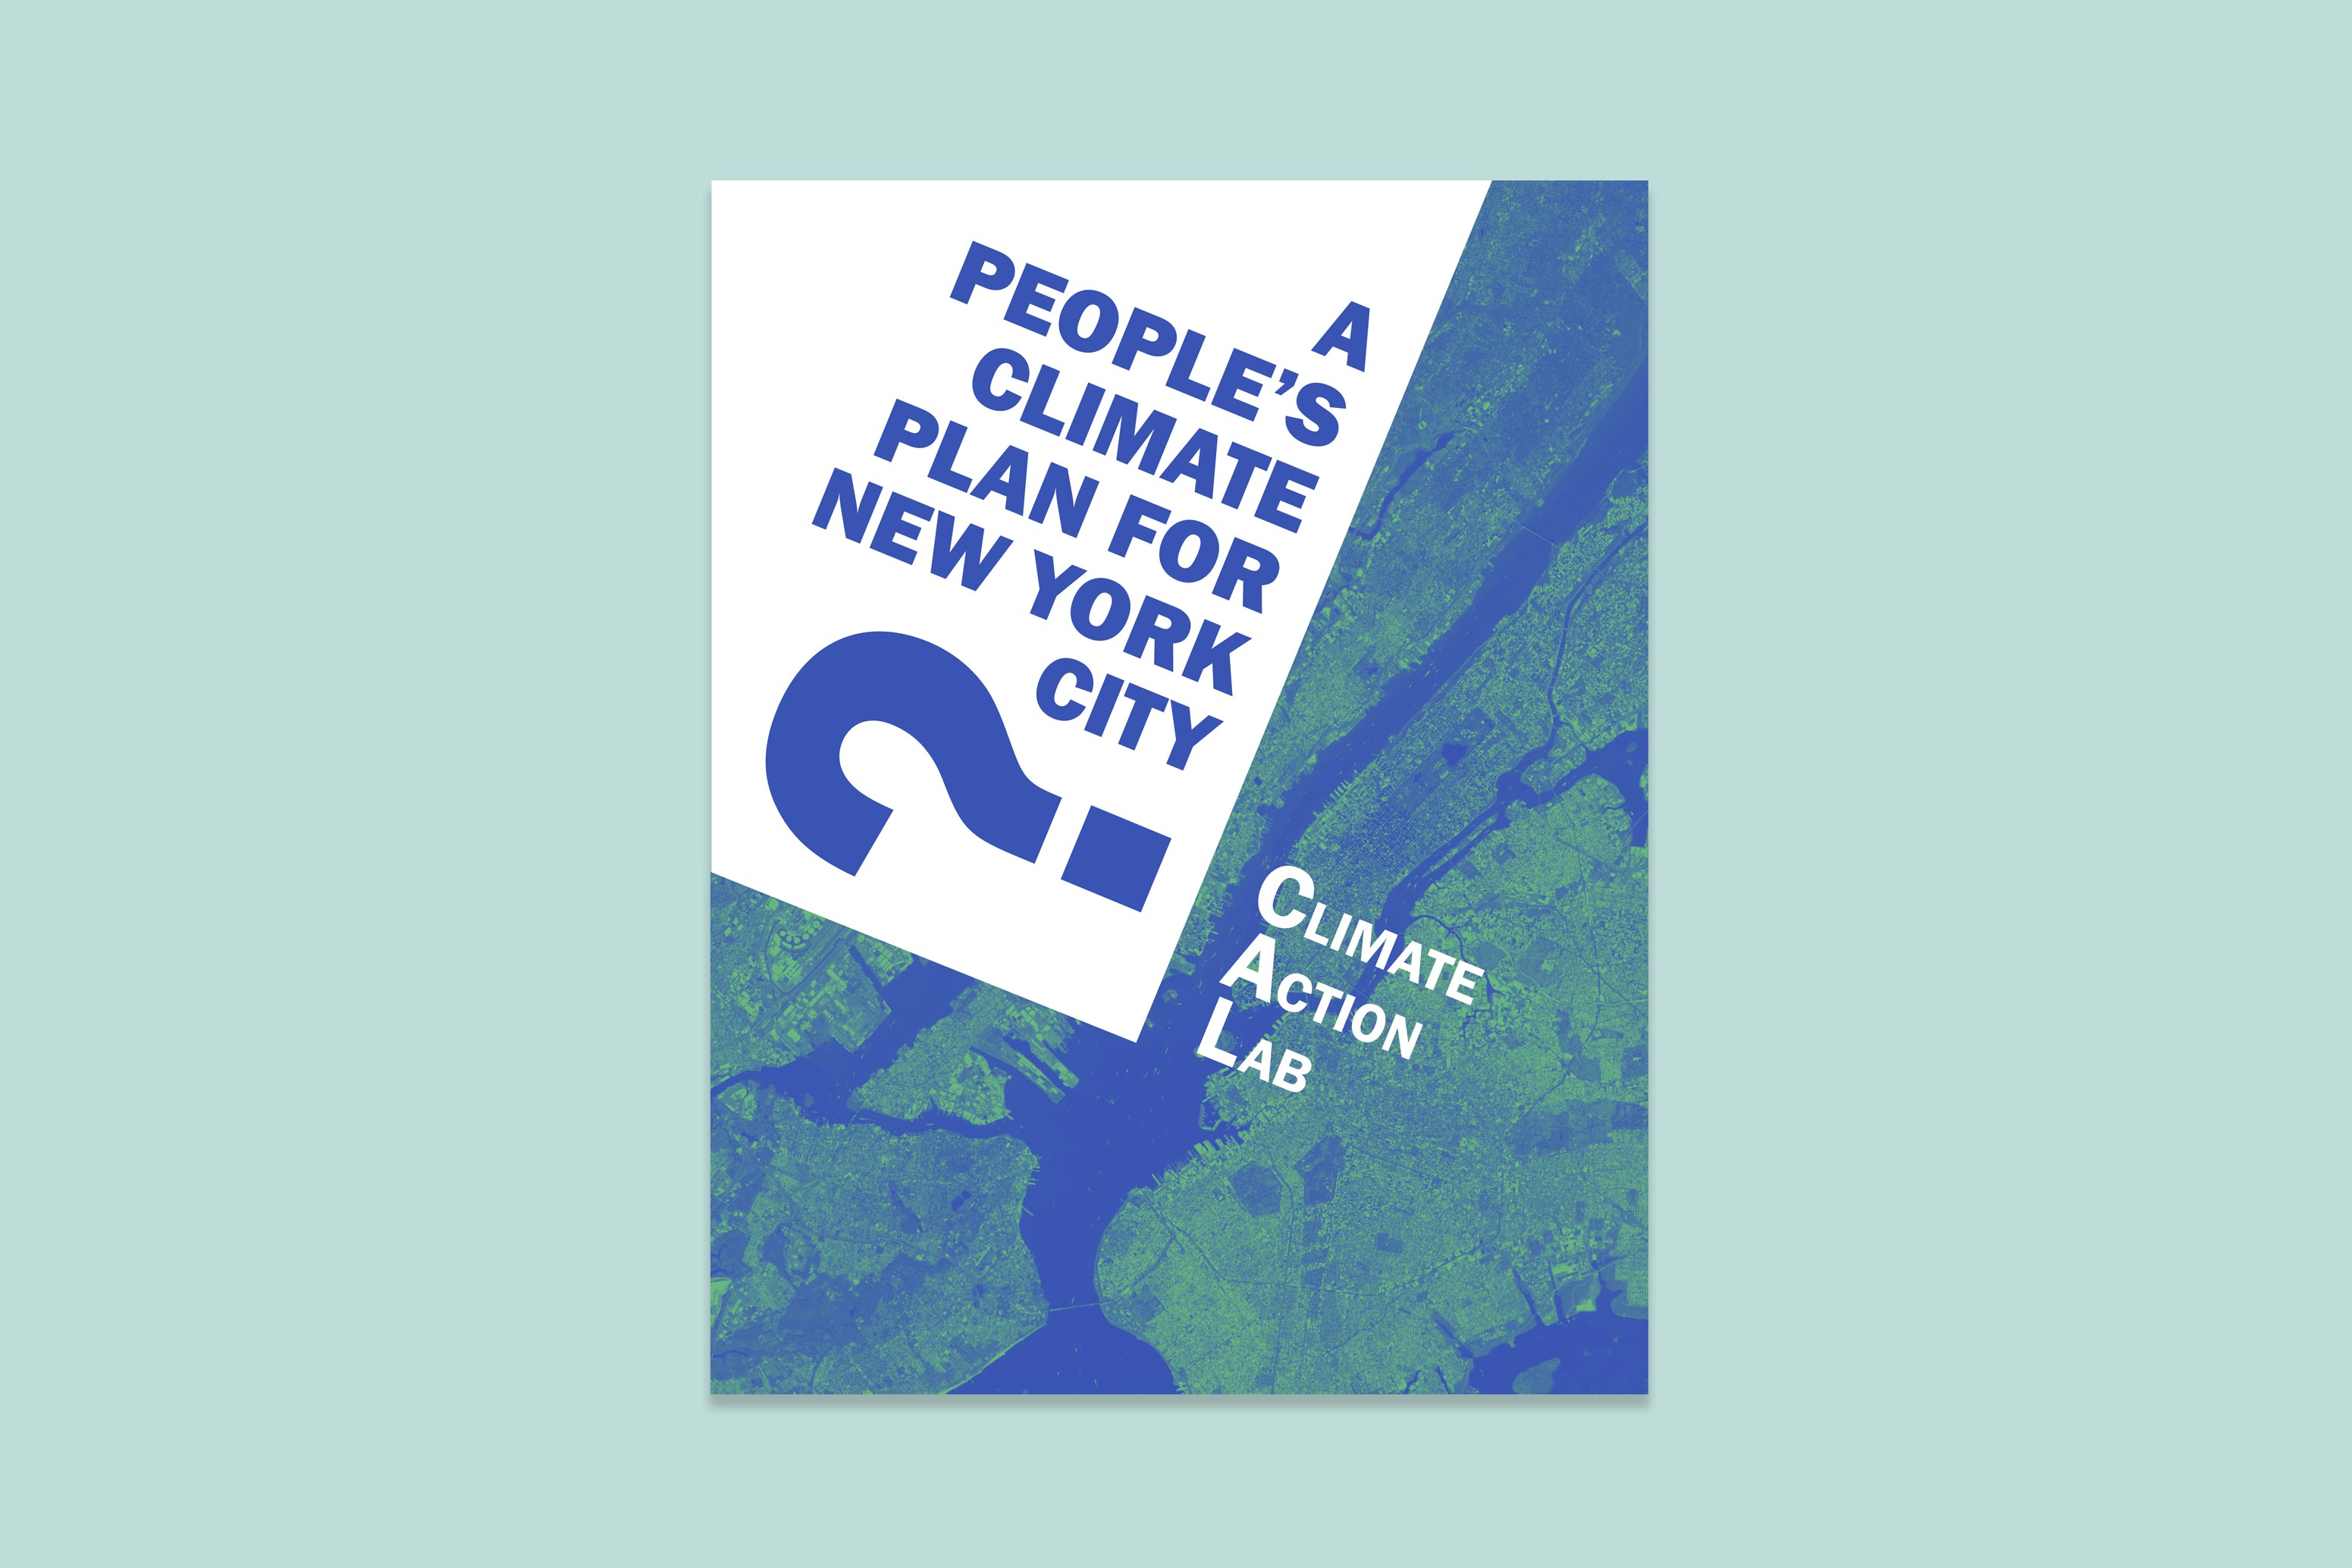 A People's Climate Plan for New York City